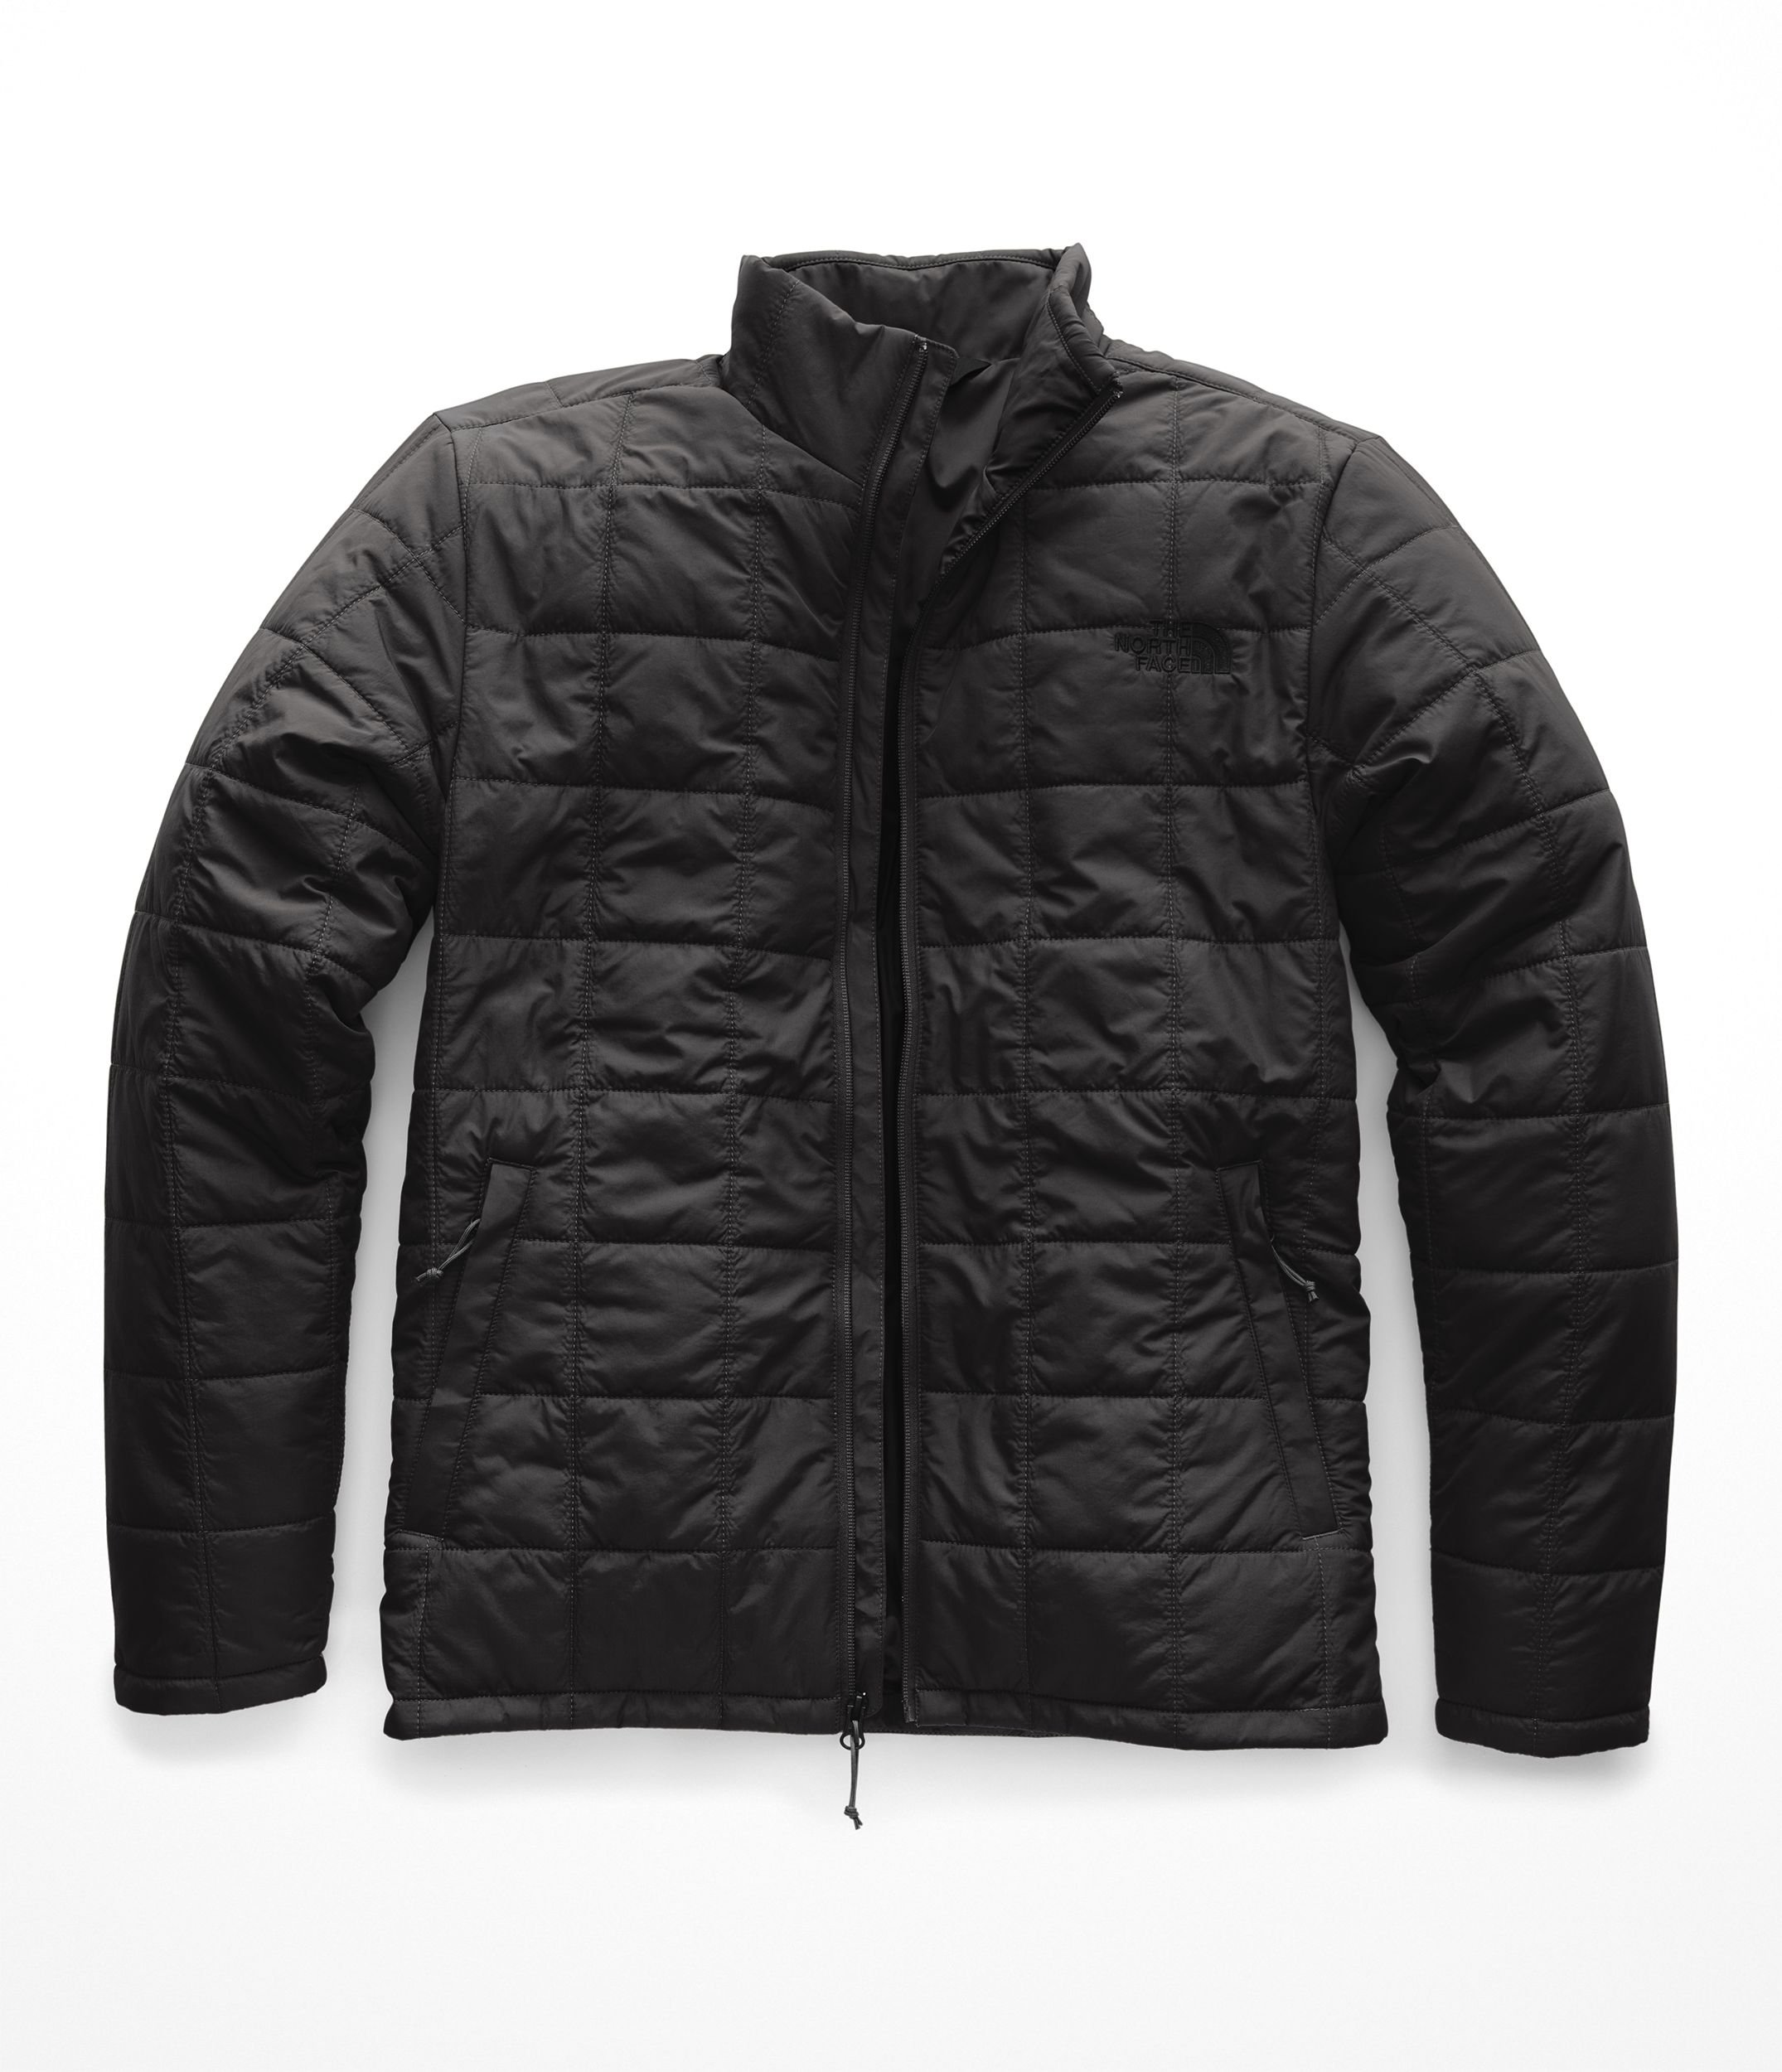 The North Face Men's Harway Jacket - Asphalt Grey - S